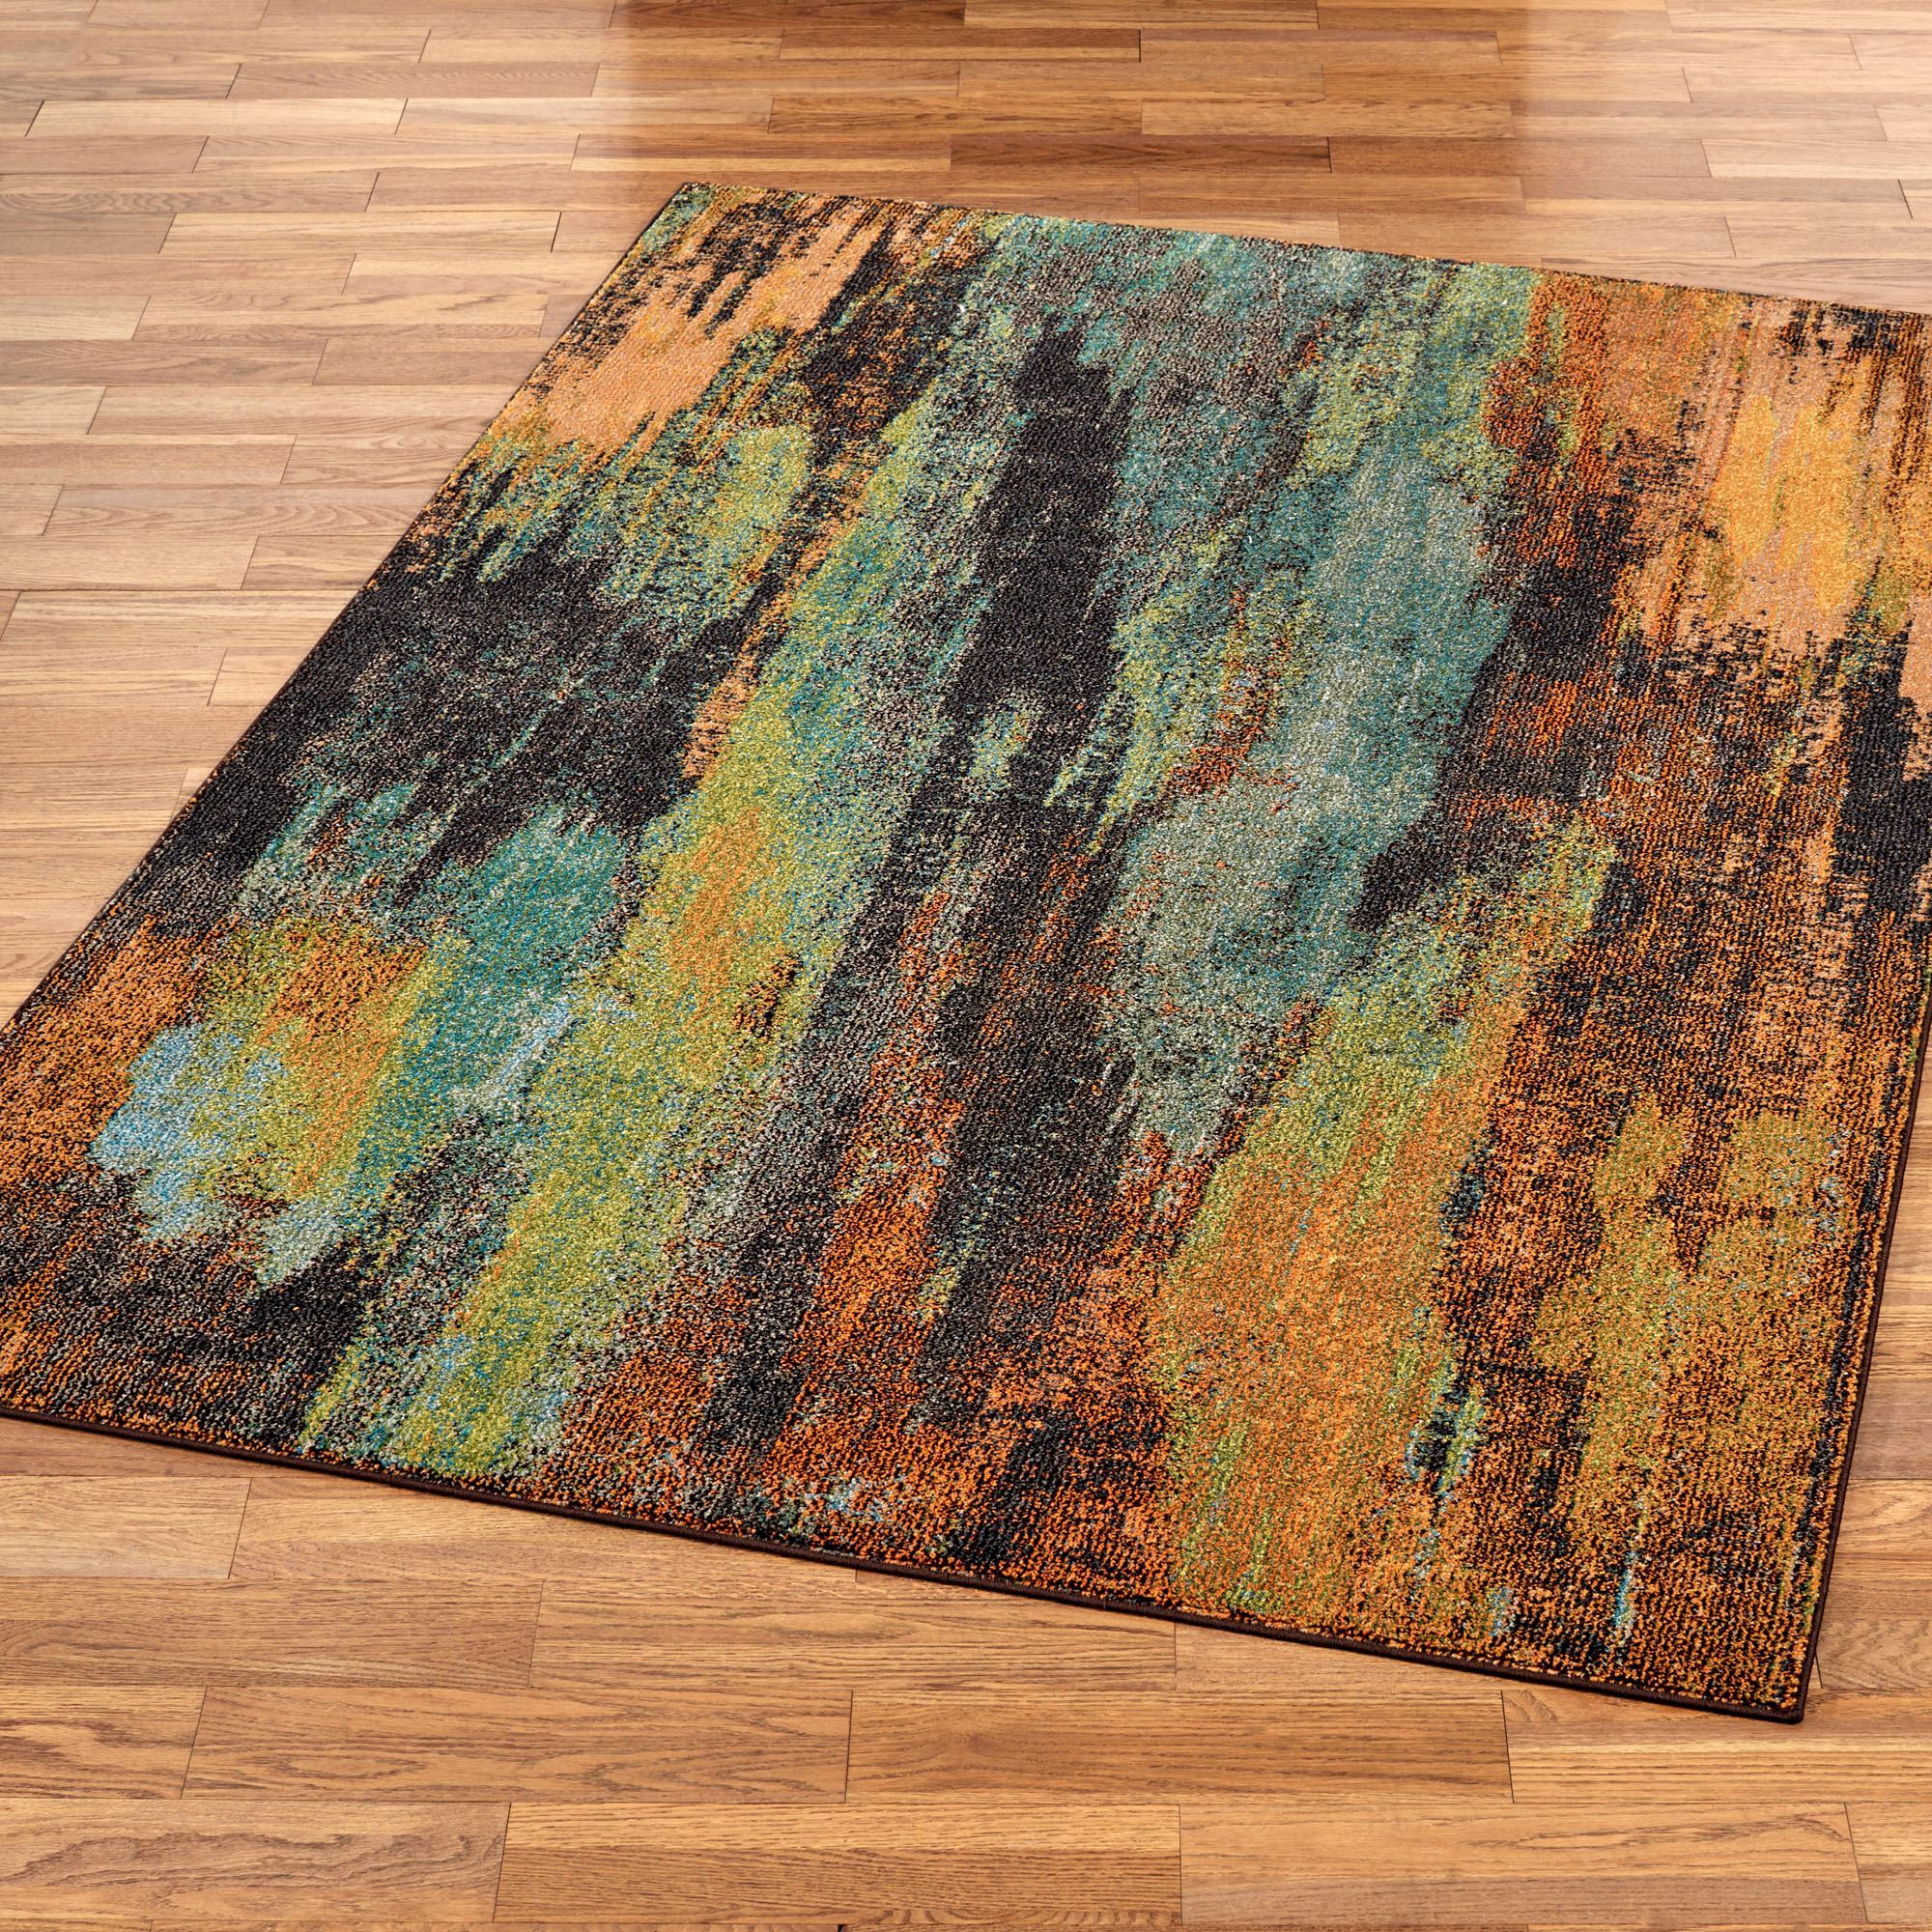 Oxidation multicolored abstract area rugs for Area carpets and rugs